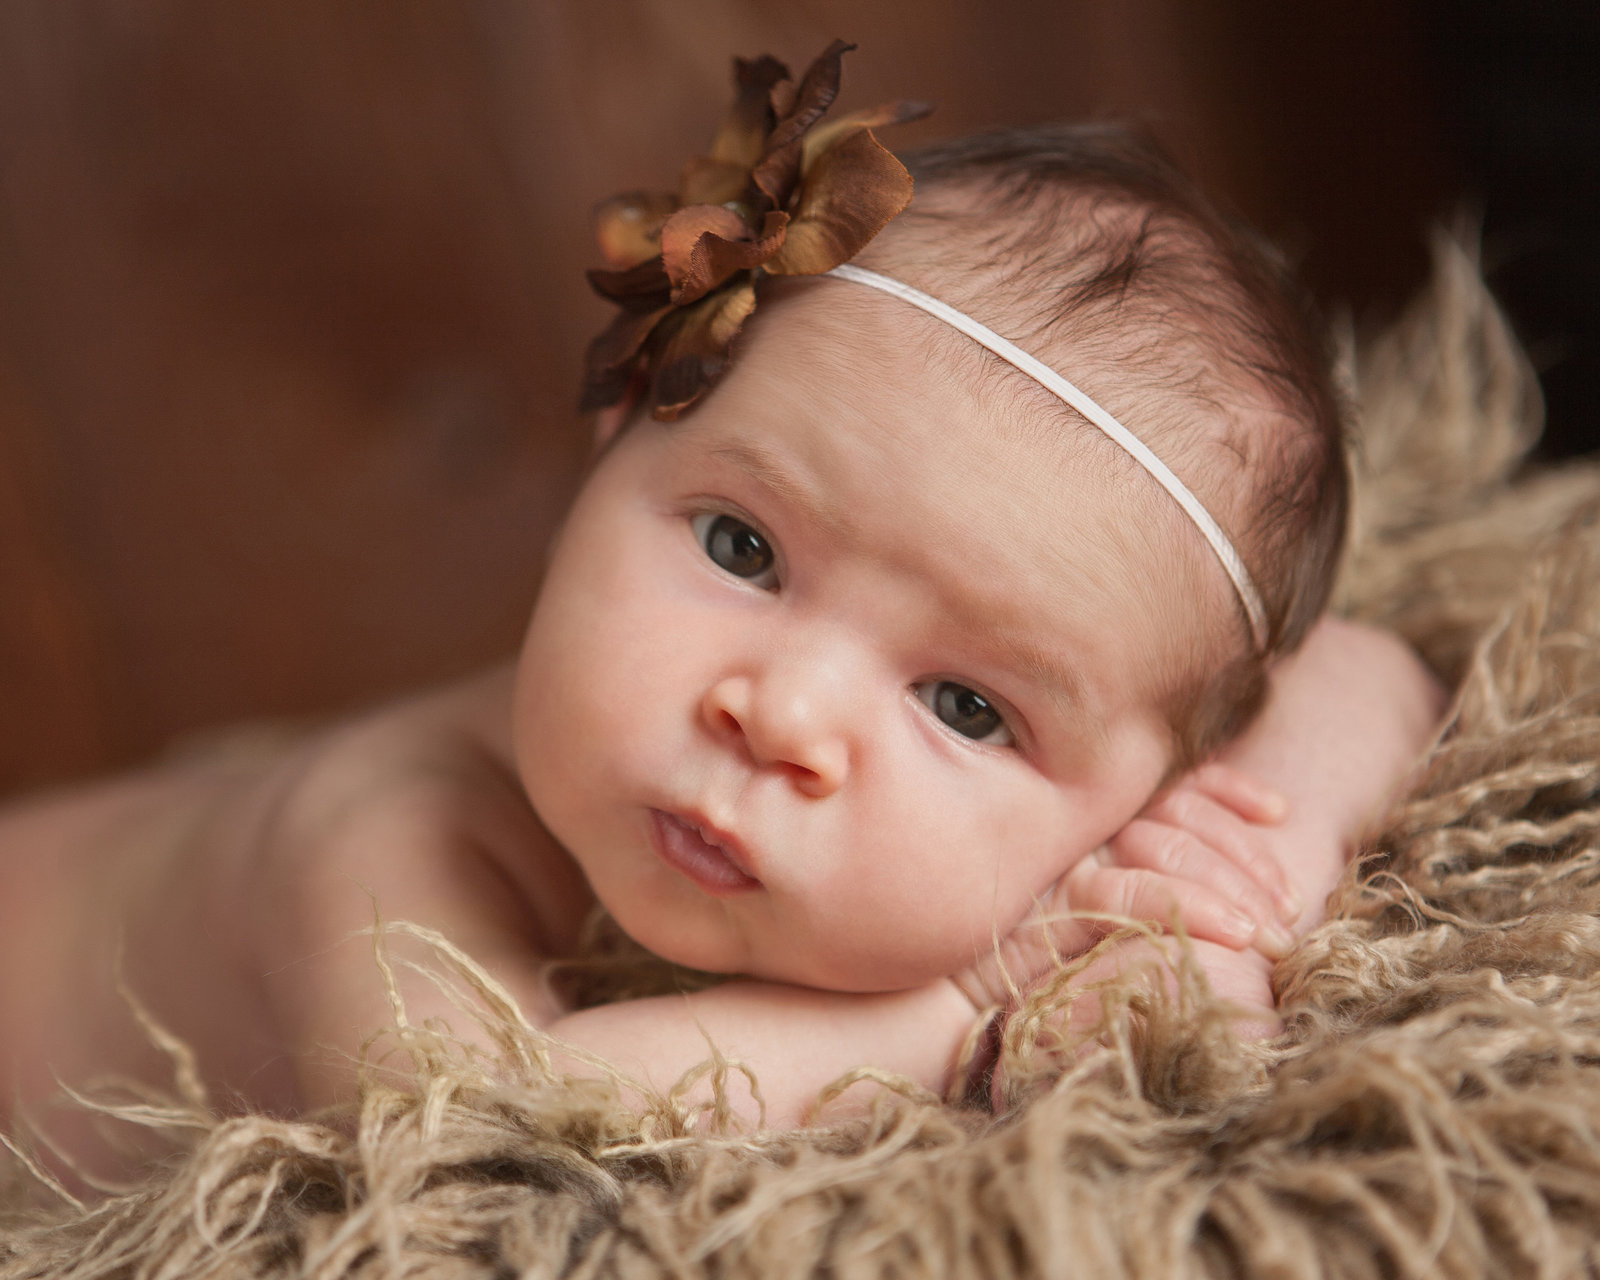 Newburgh NY baby girl awake and looking at the photographer Hudson Valley professional photography Cornwall NY